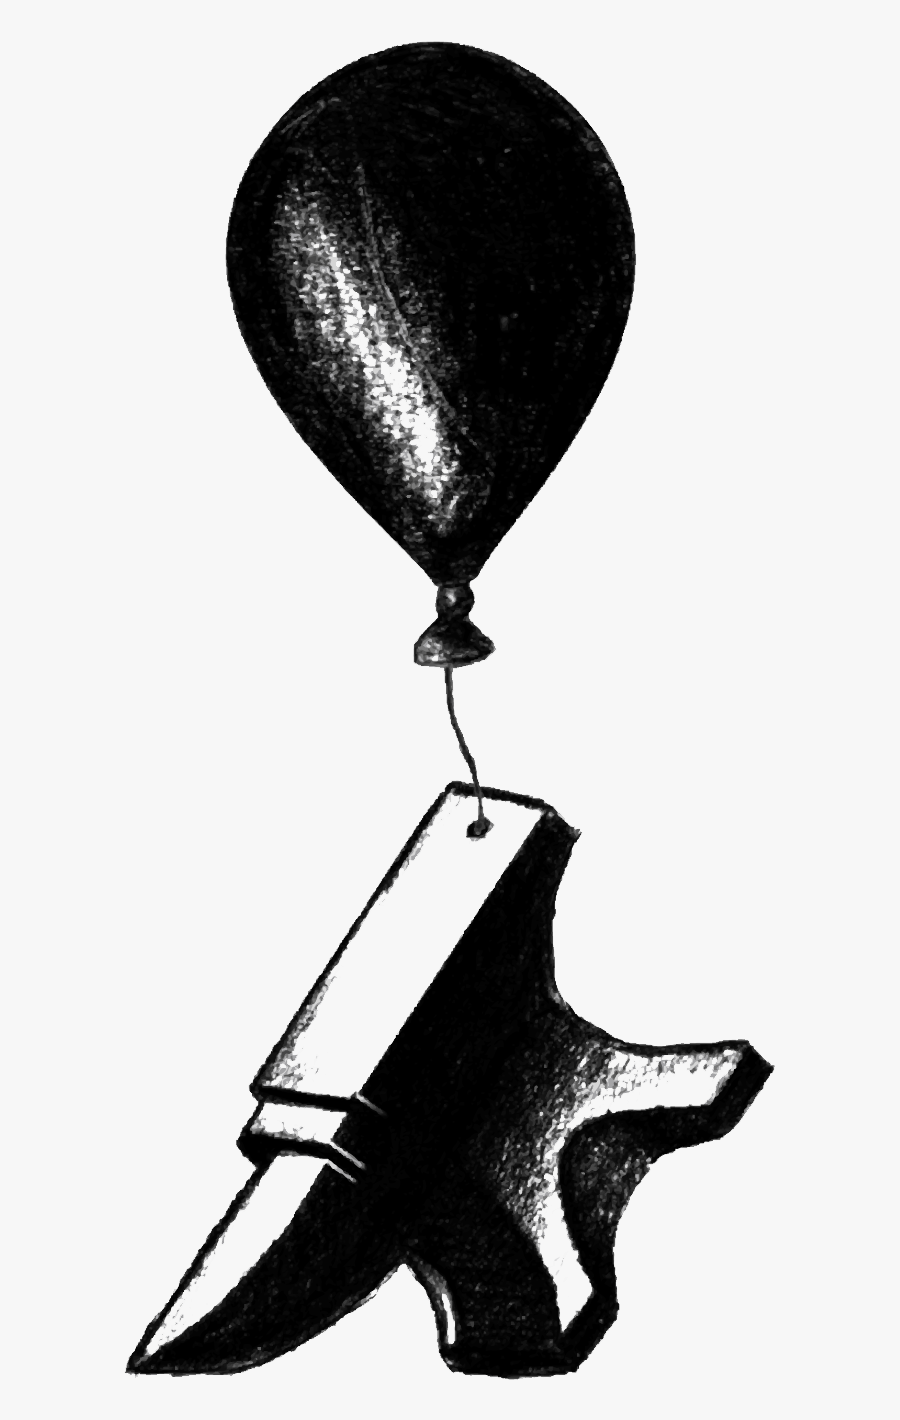 Anvil Drawing Old For Free Download - Balloon, Transparent Clipart